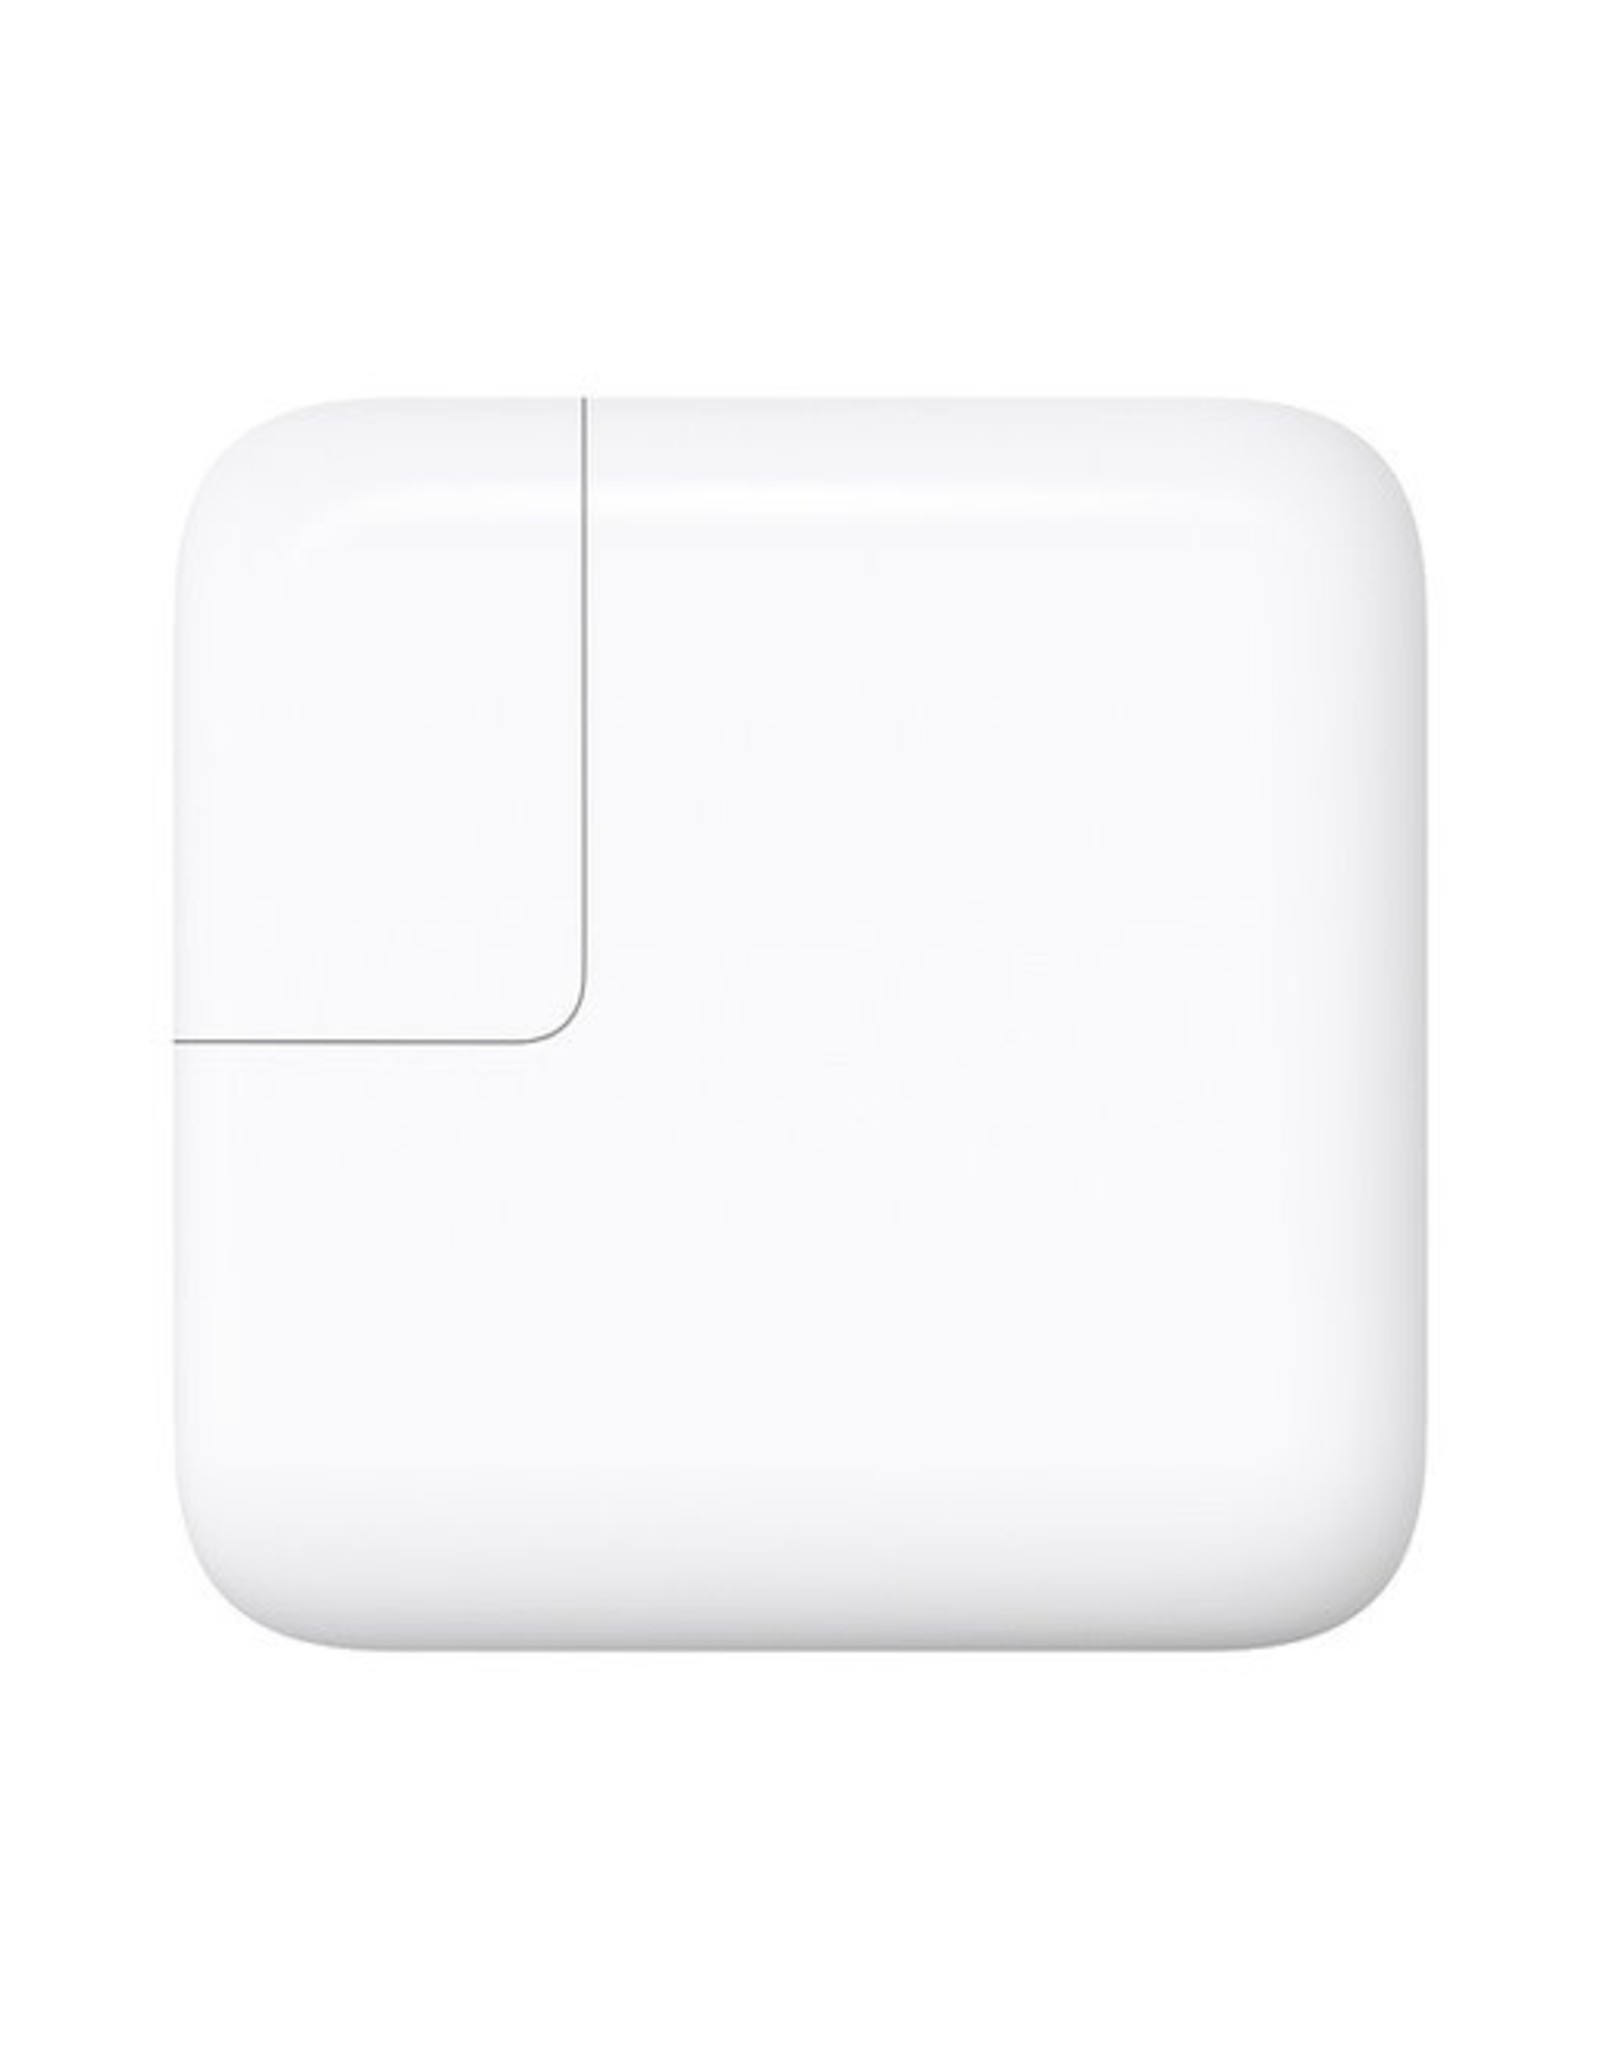 Apple Inst. 30W USB-C Power Adapter